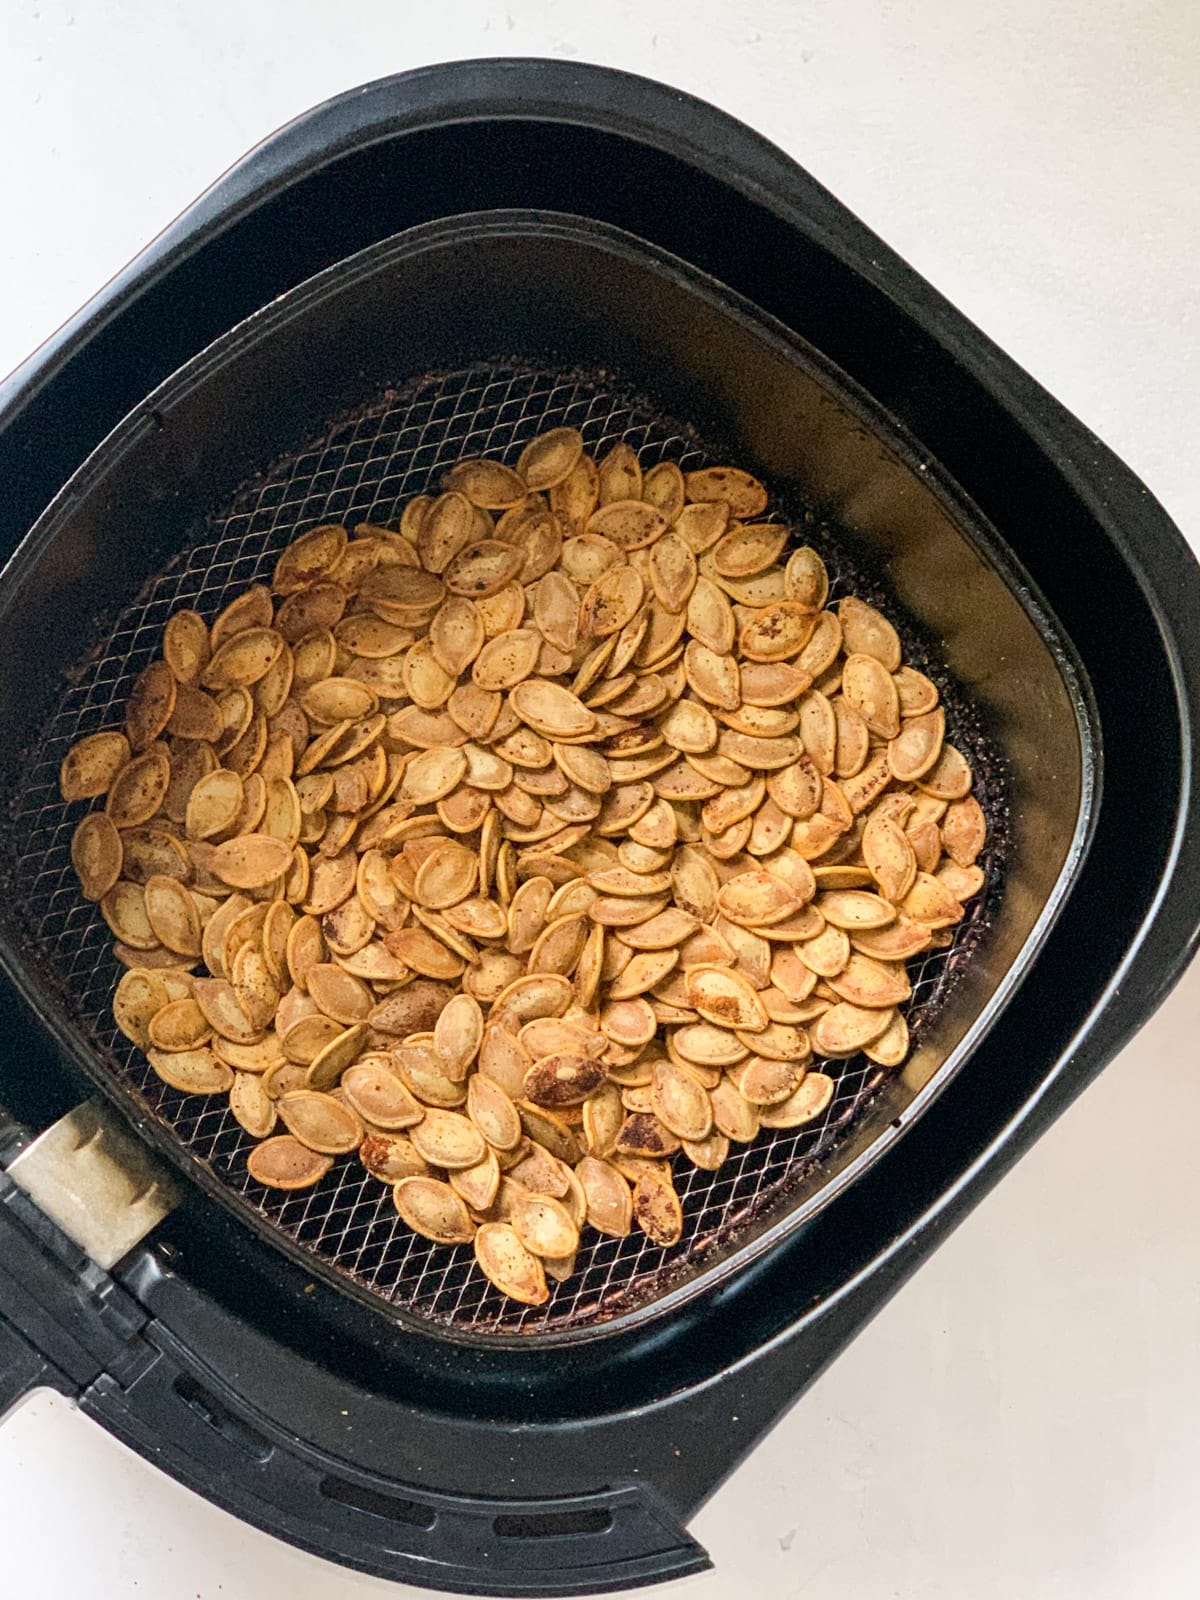 Pumpkin seeds roasted in an air fryer